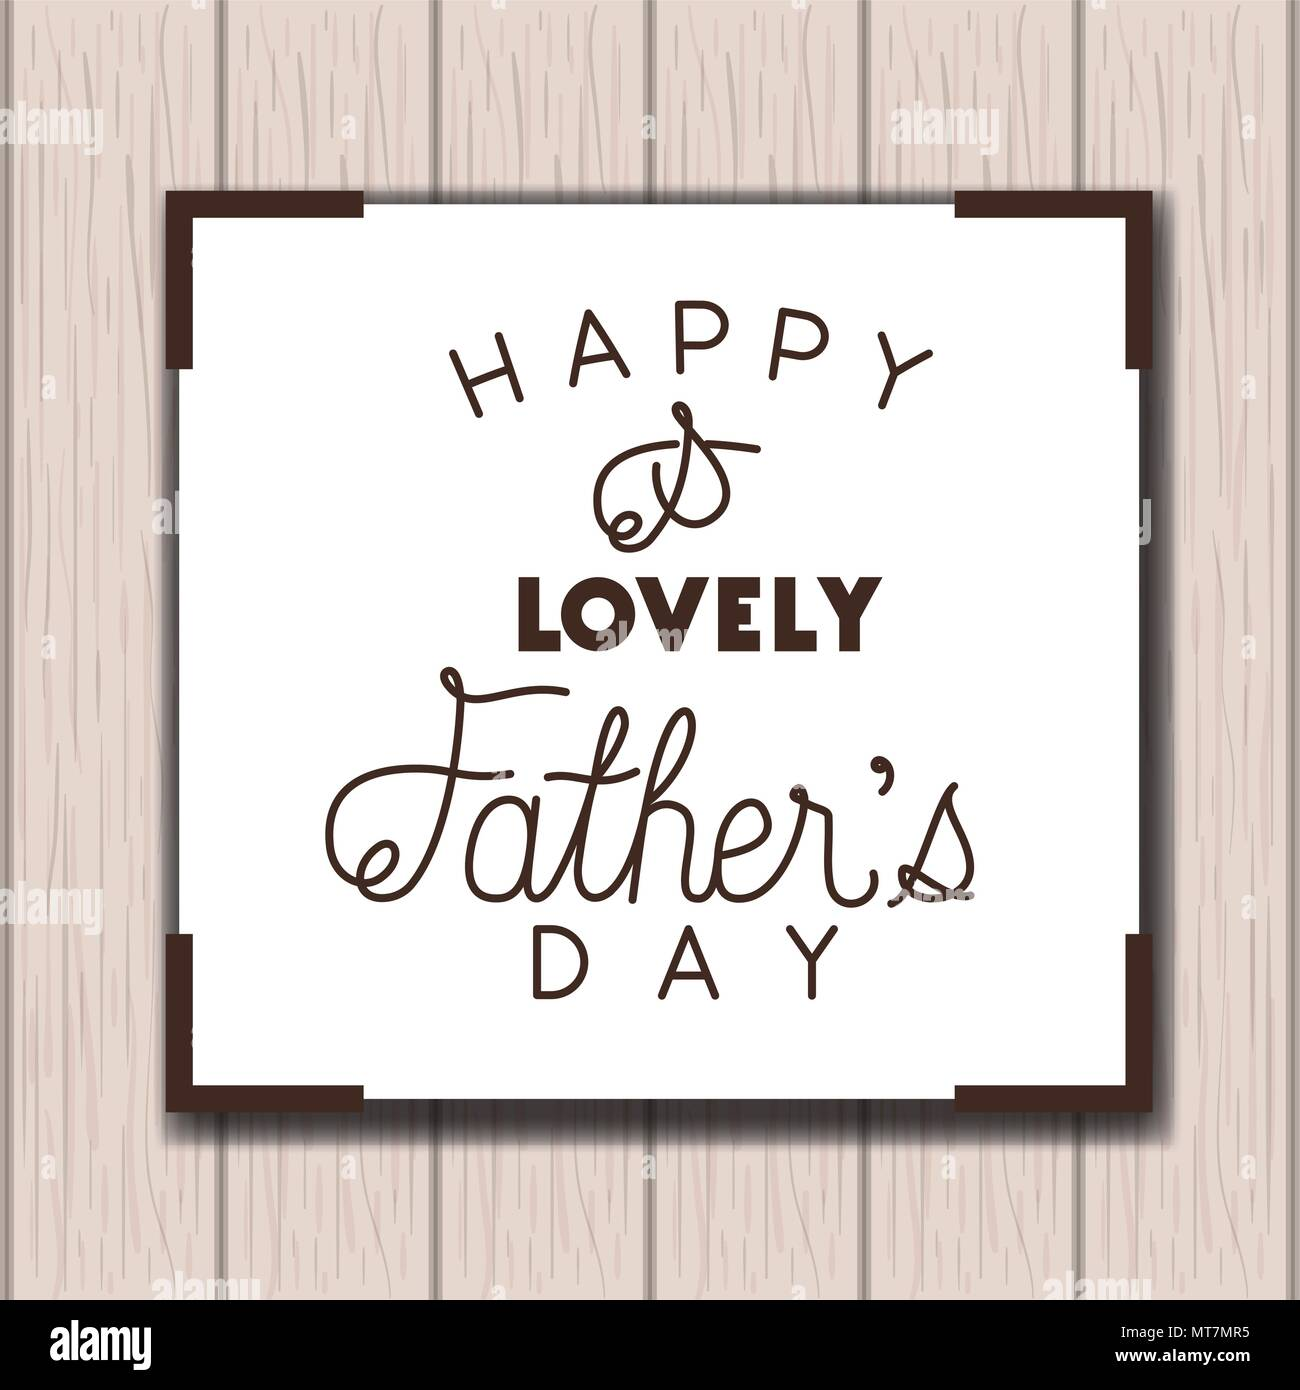 happy fathers day card with wooden background - Stock Image